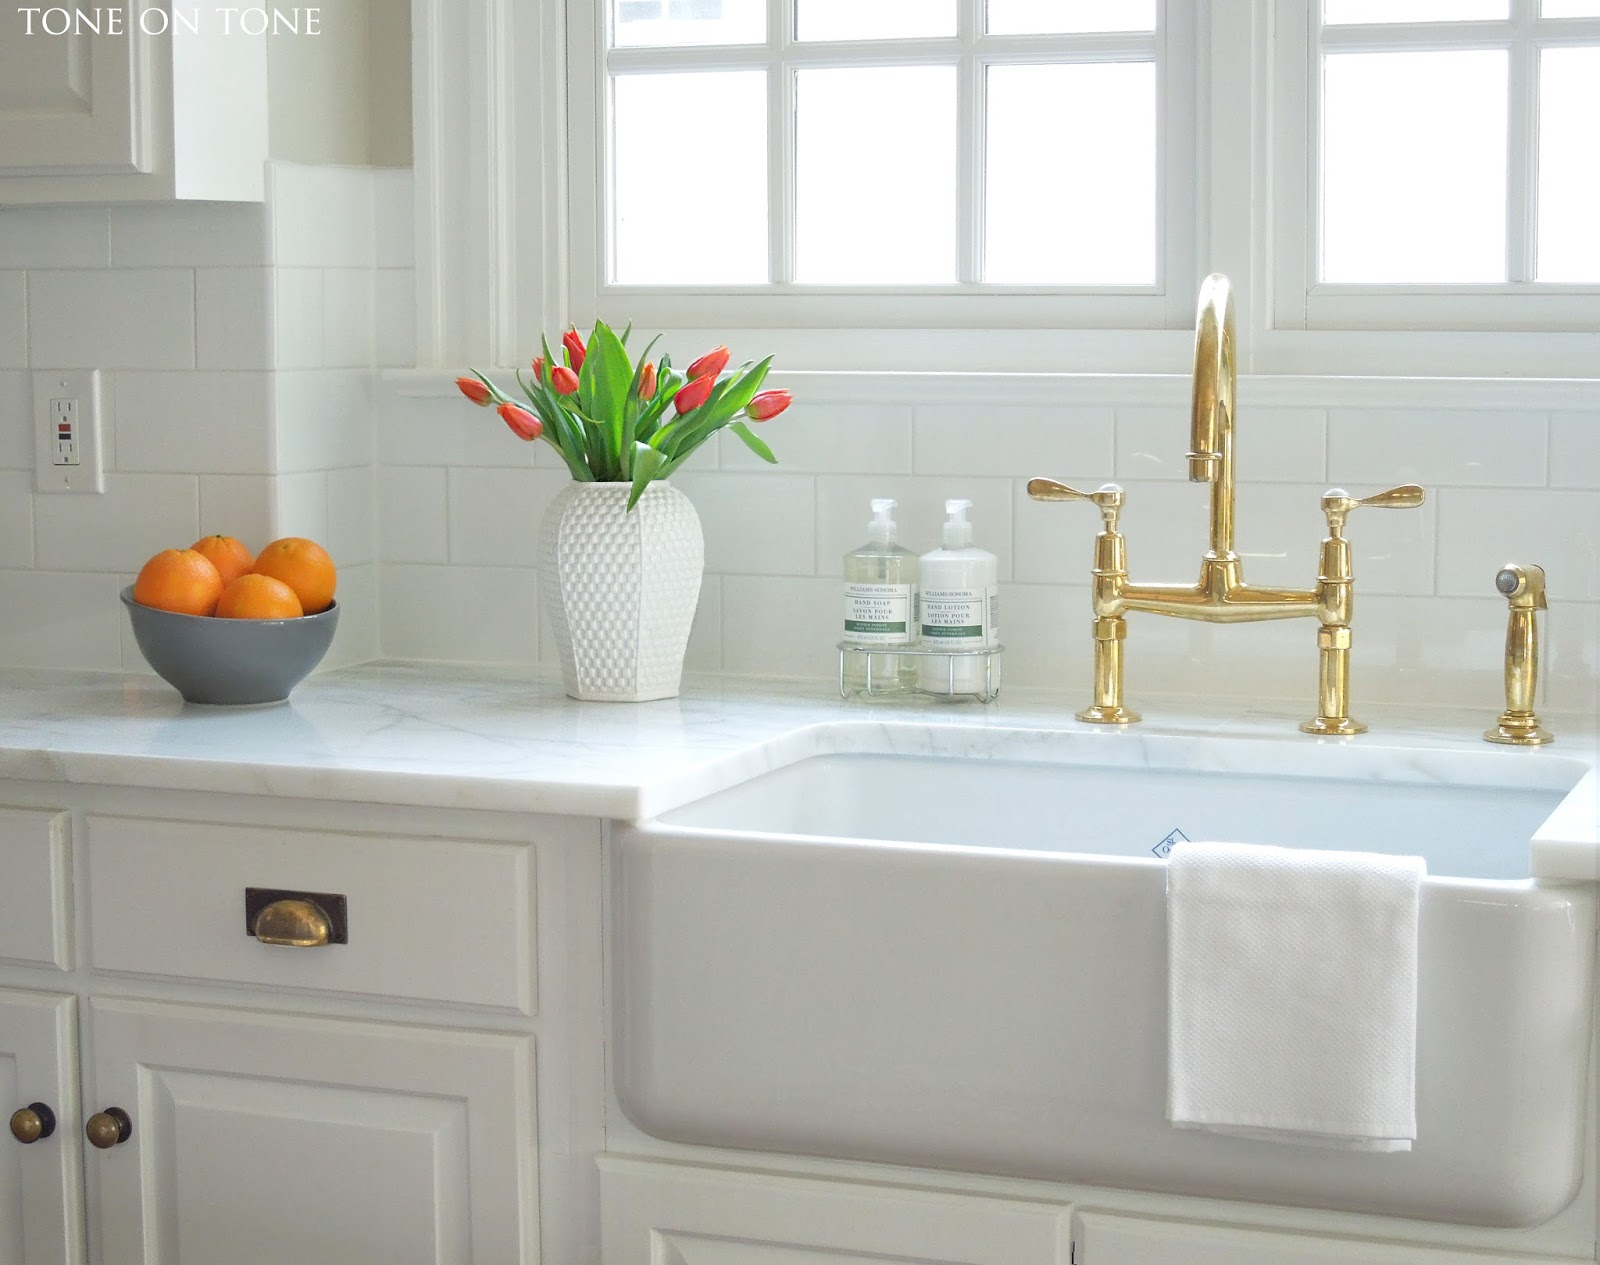 a diy chalkboard unlacquered brass kitchen faucet is the unlacquered brass faucet over a farmhouse style sink both added during the makeover I suggested the unlacquered brass finish to complement the